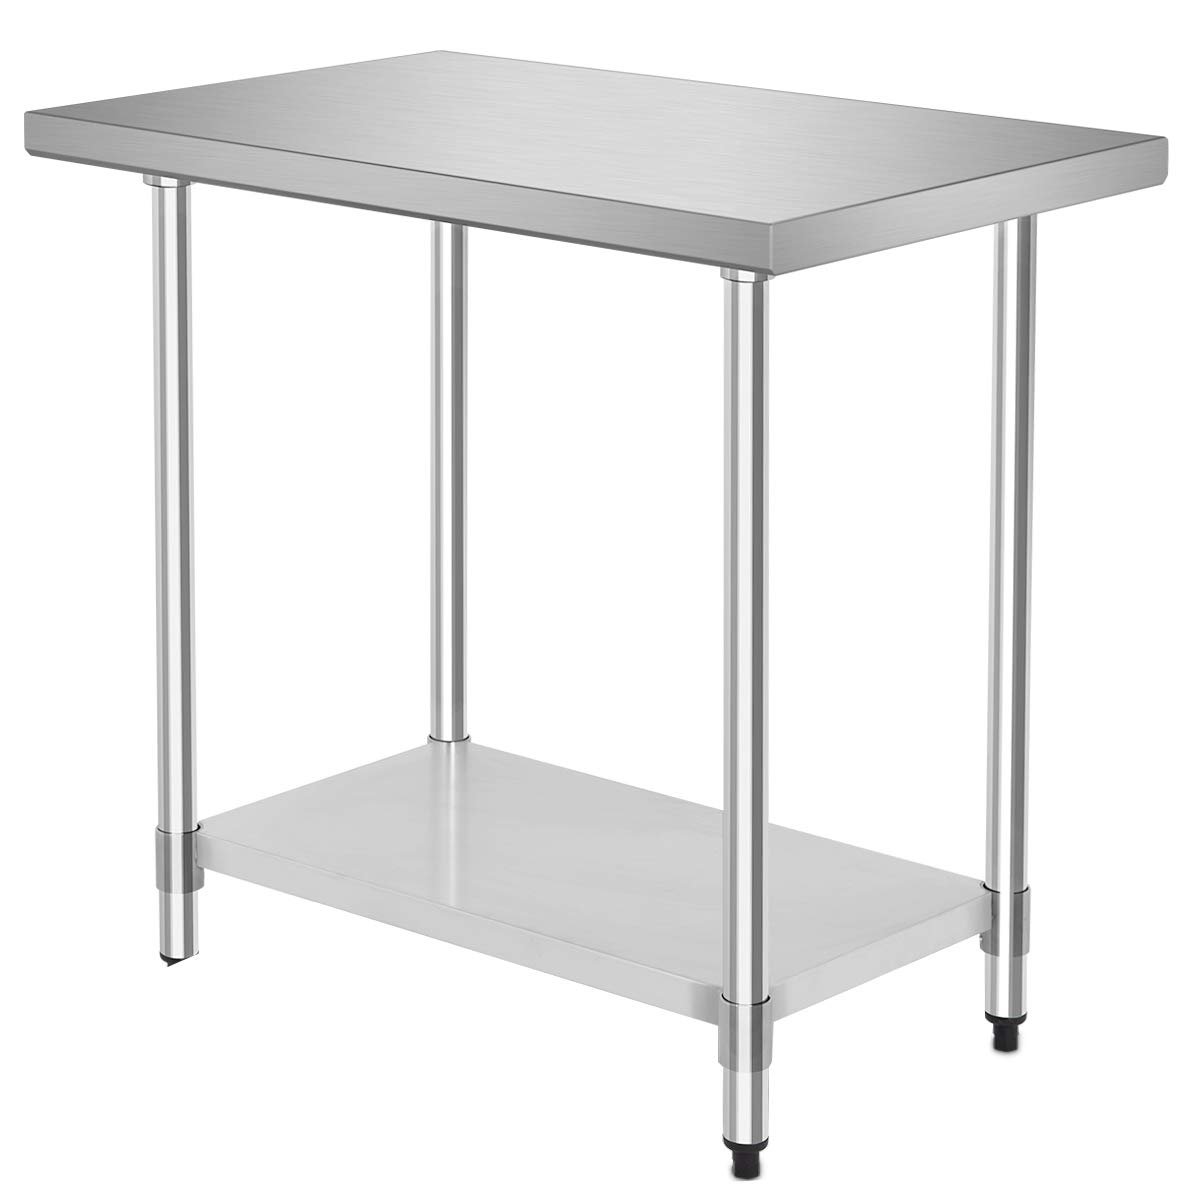 36'' x 24'' NSF Stainless Steel Food Prep Table, Heavy Duty Commercial Kitchen Food Prep Table & Work Table, Wheels Installable, Adjustable Shelf, by WATERJOY by WATERJOY